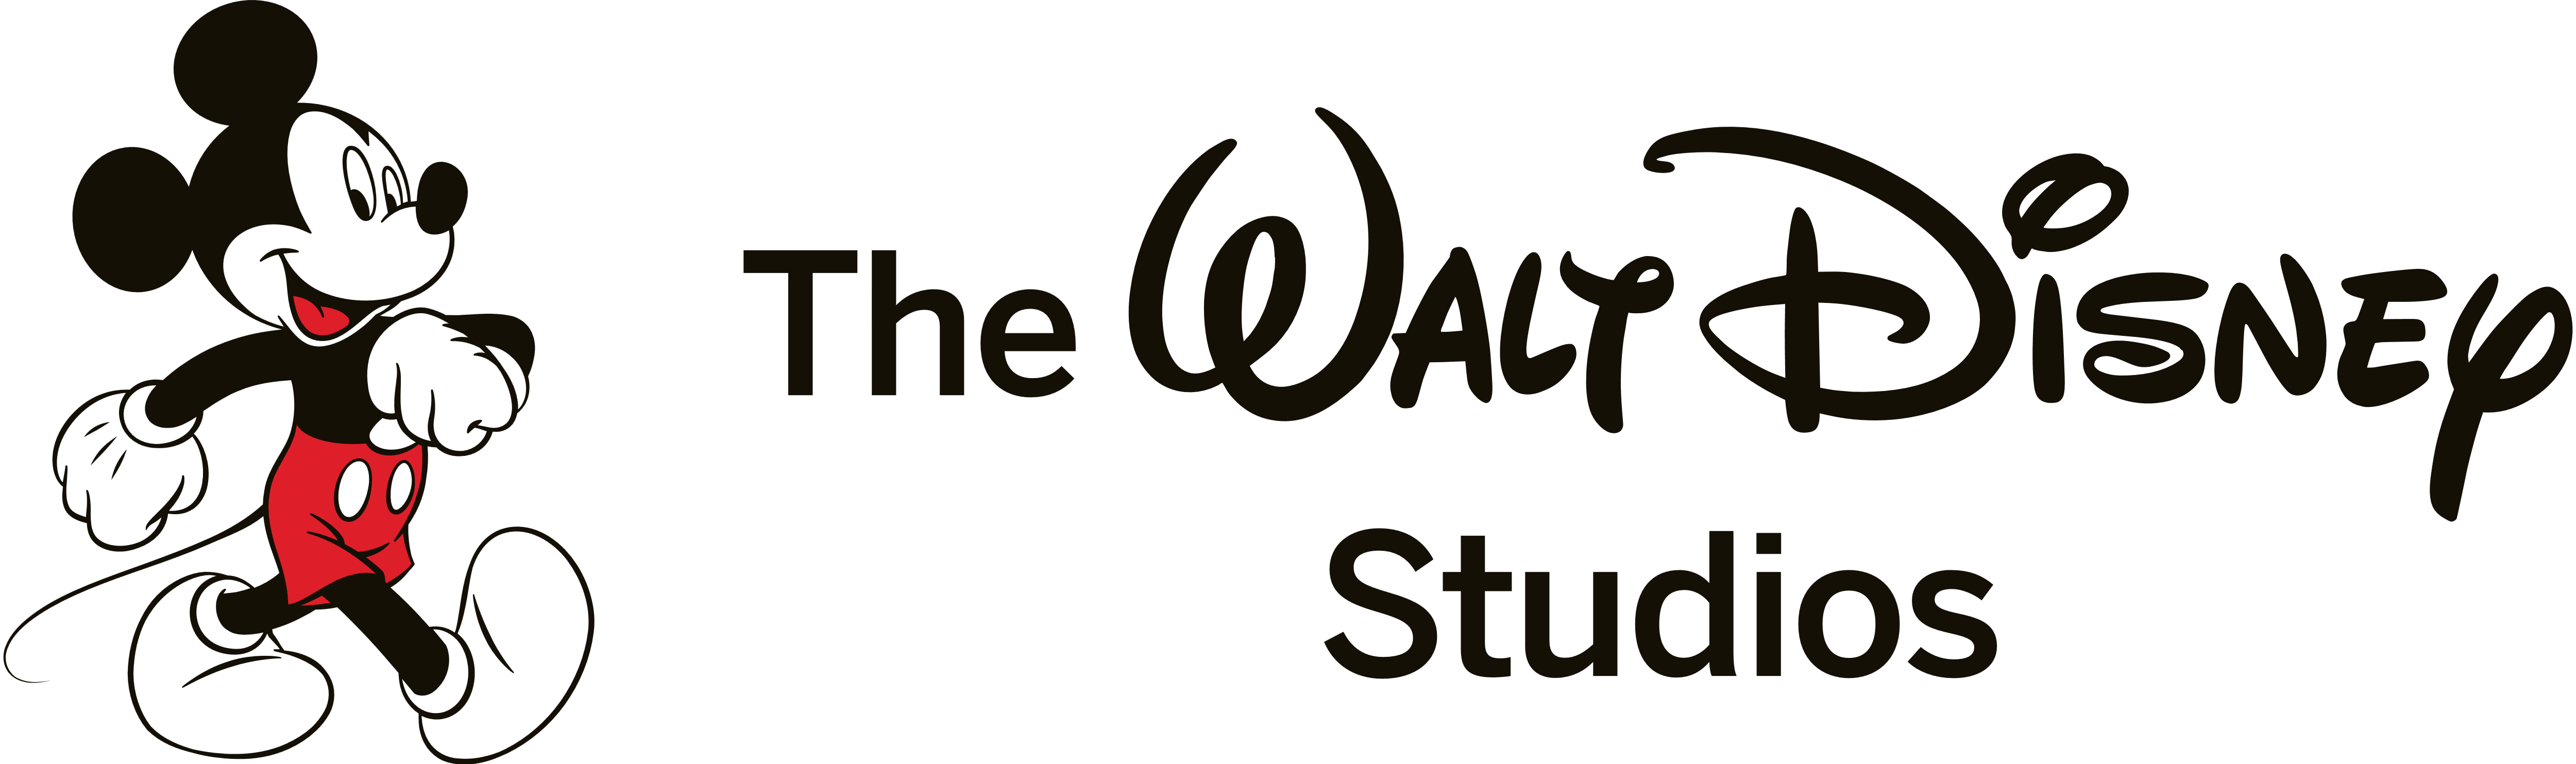 Walt disney pictures logo png. The logos download